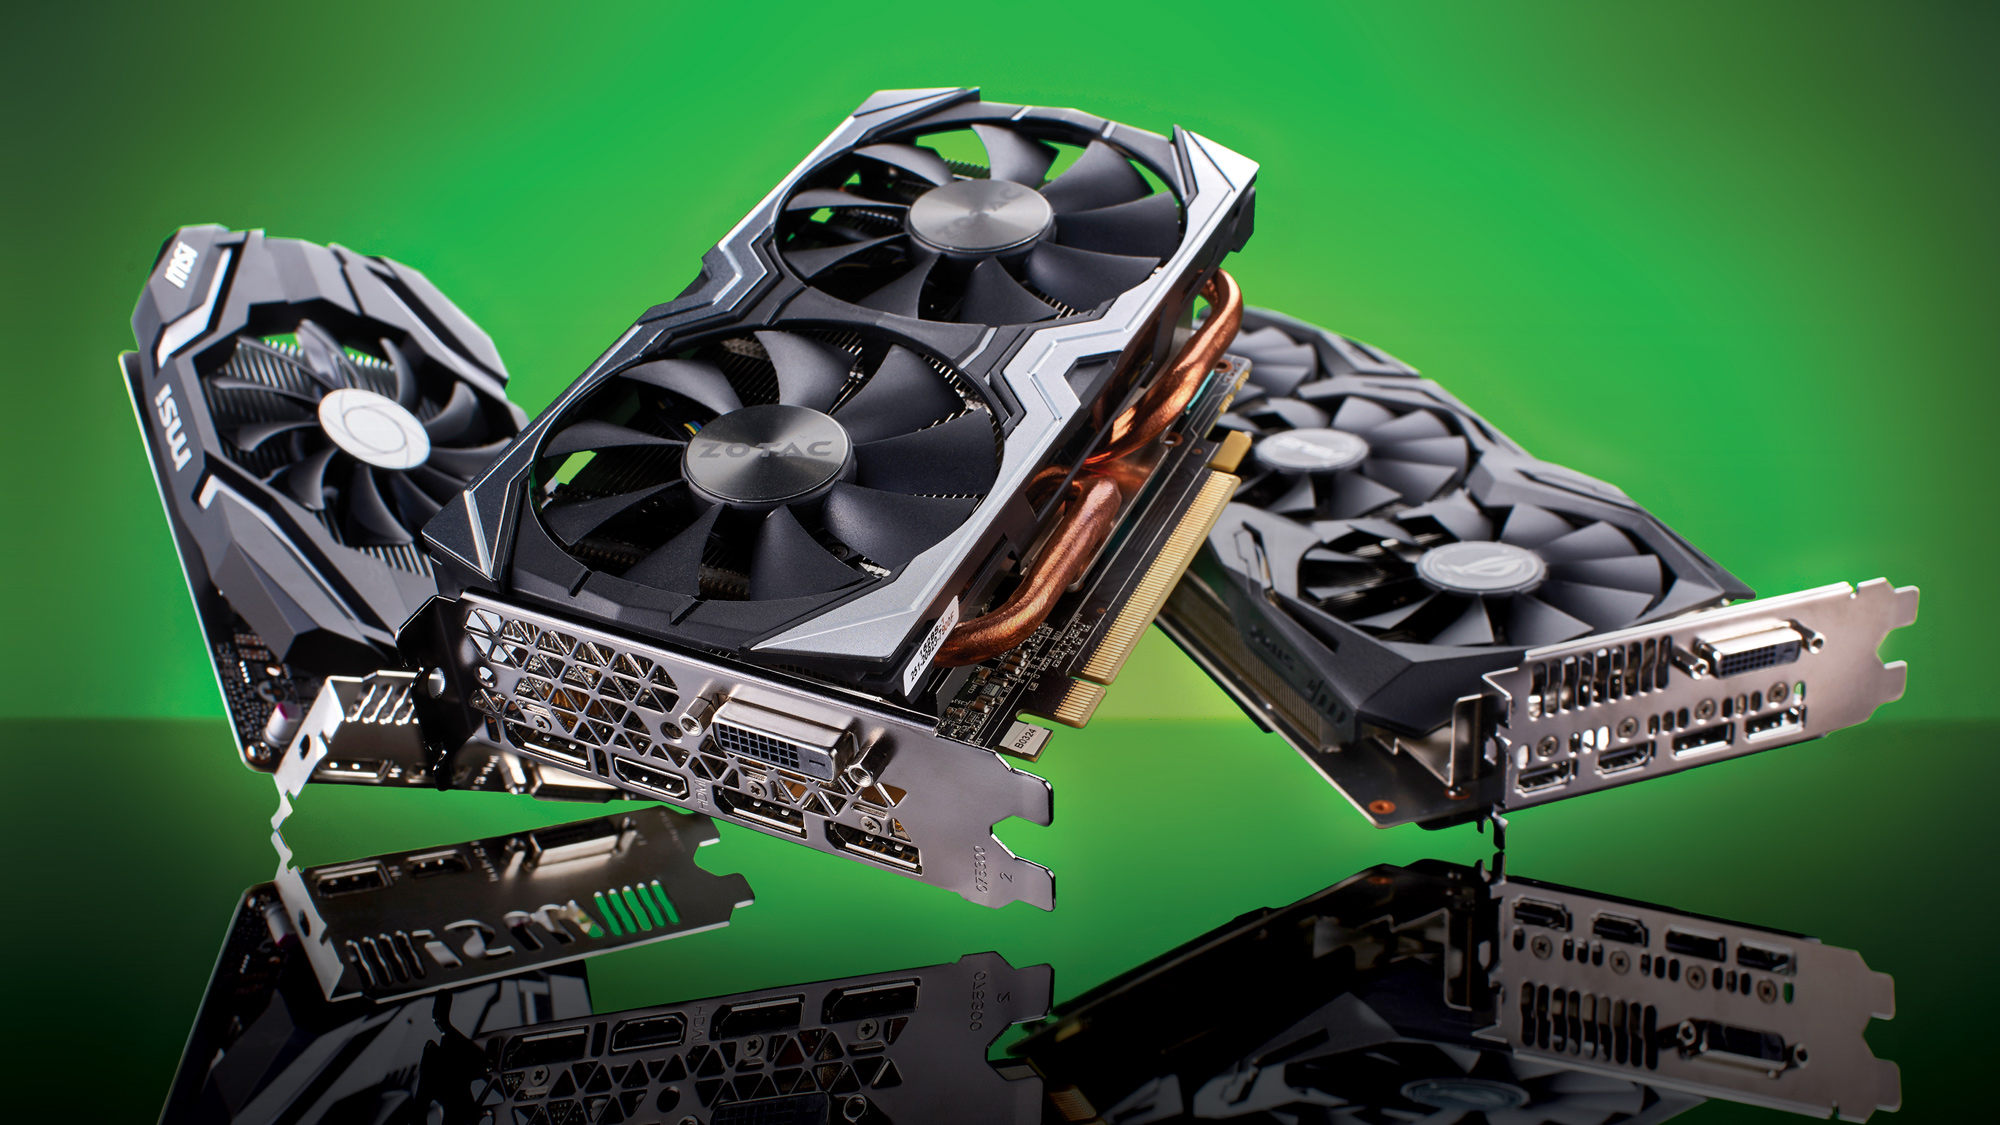 The best graphics cards 2020: all the top GPUs for gaming